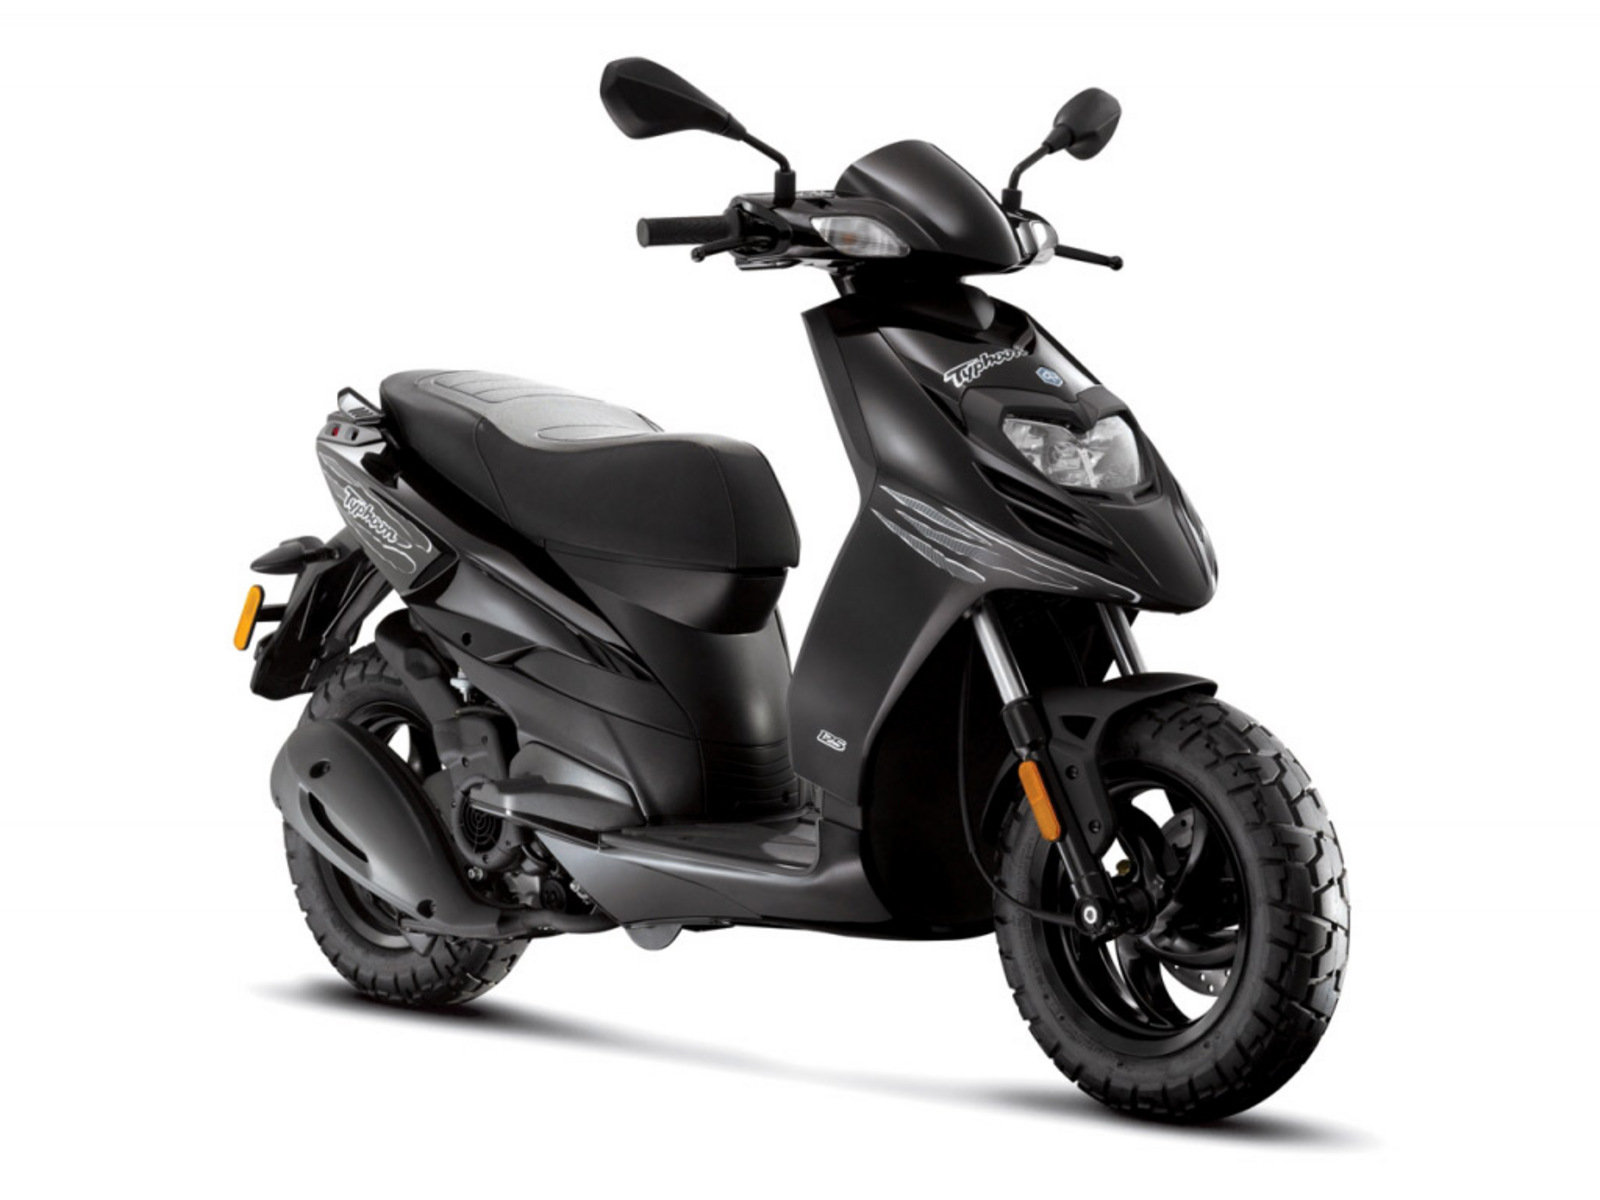 2013 piaggio typhoon 125 review top speed. Black Bedroom Furniture Sets. Home Design Ideas